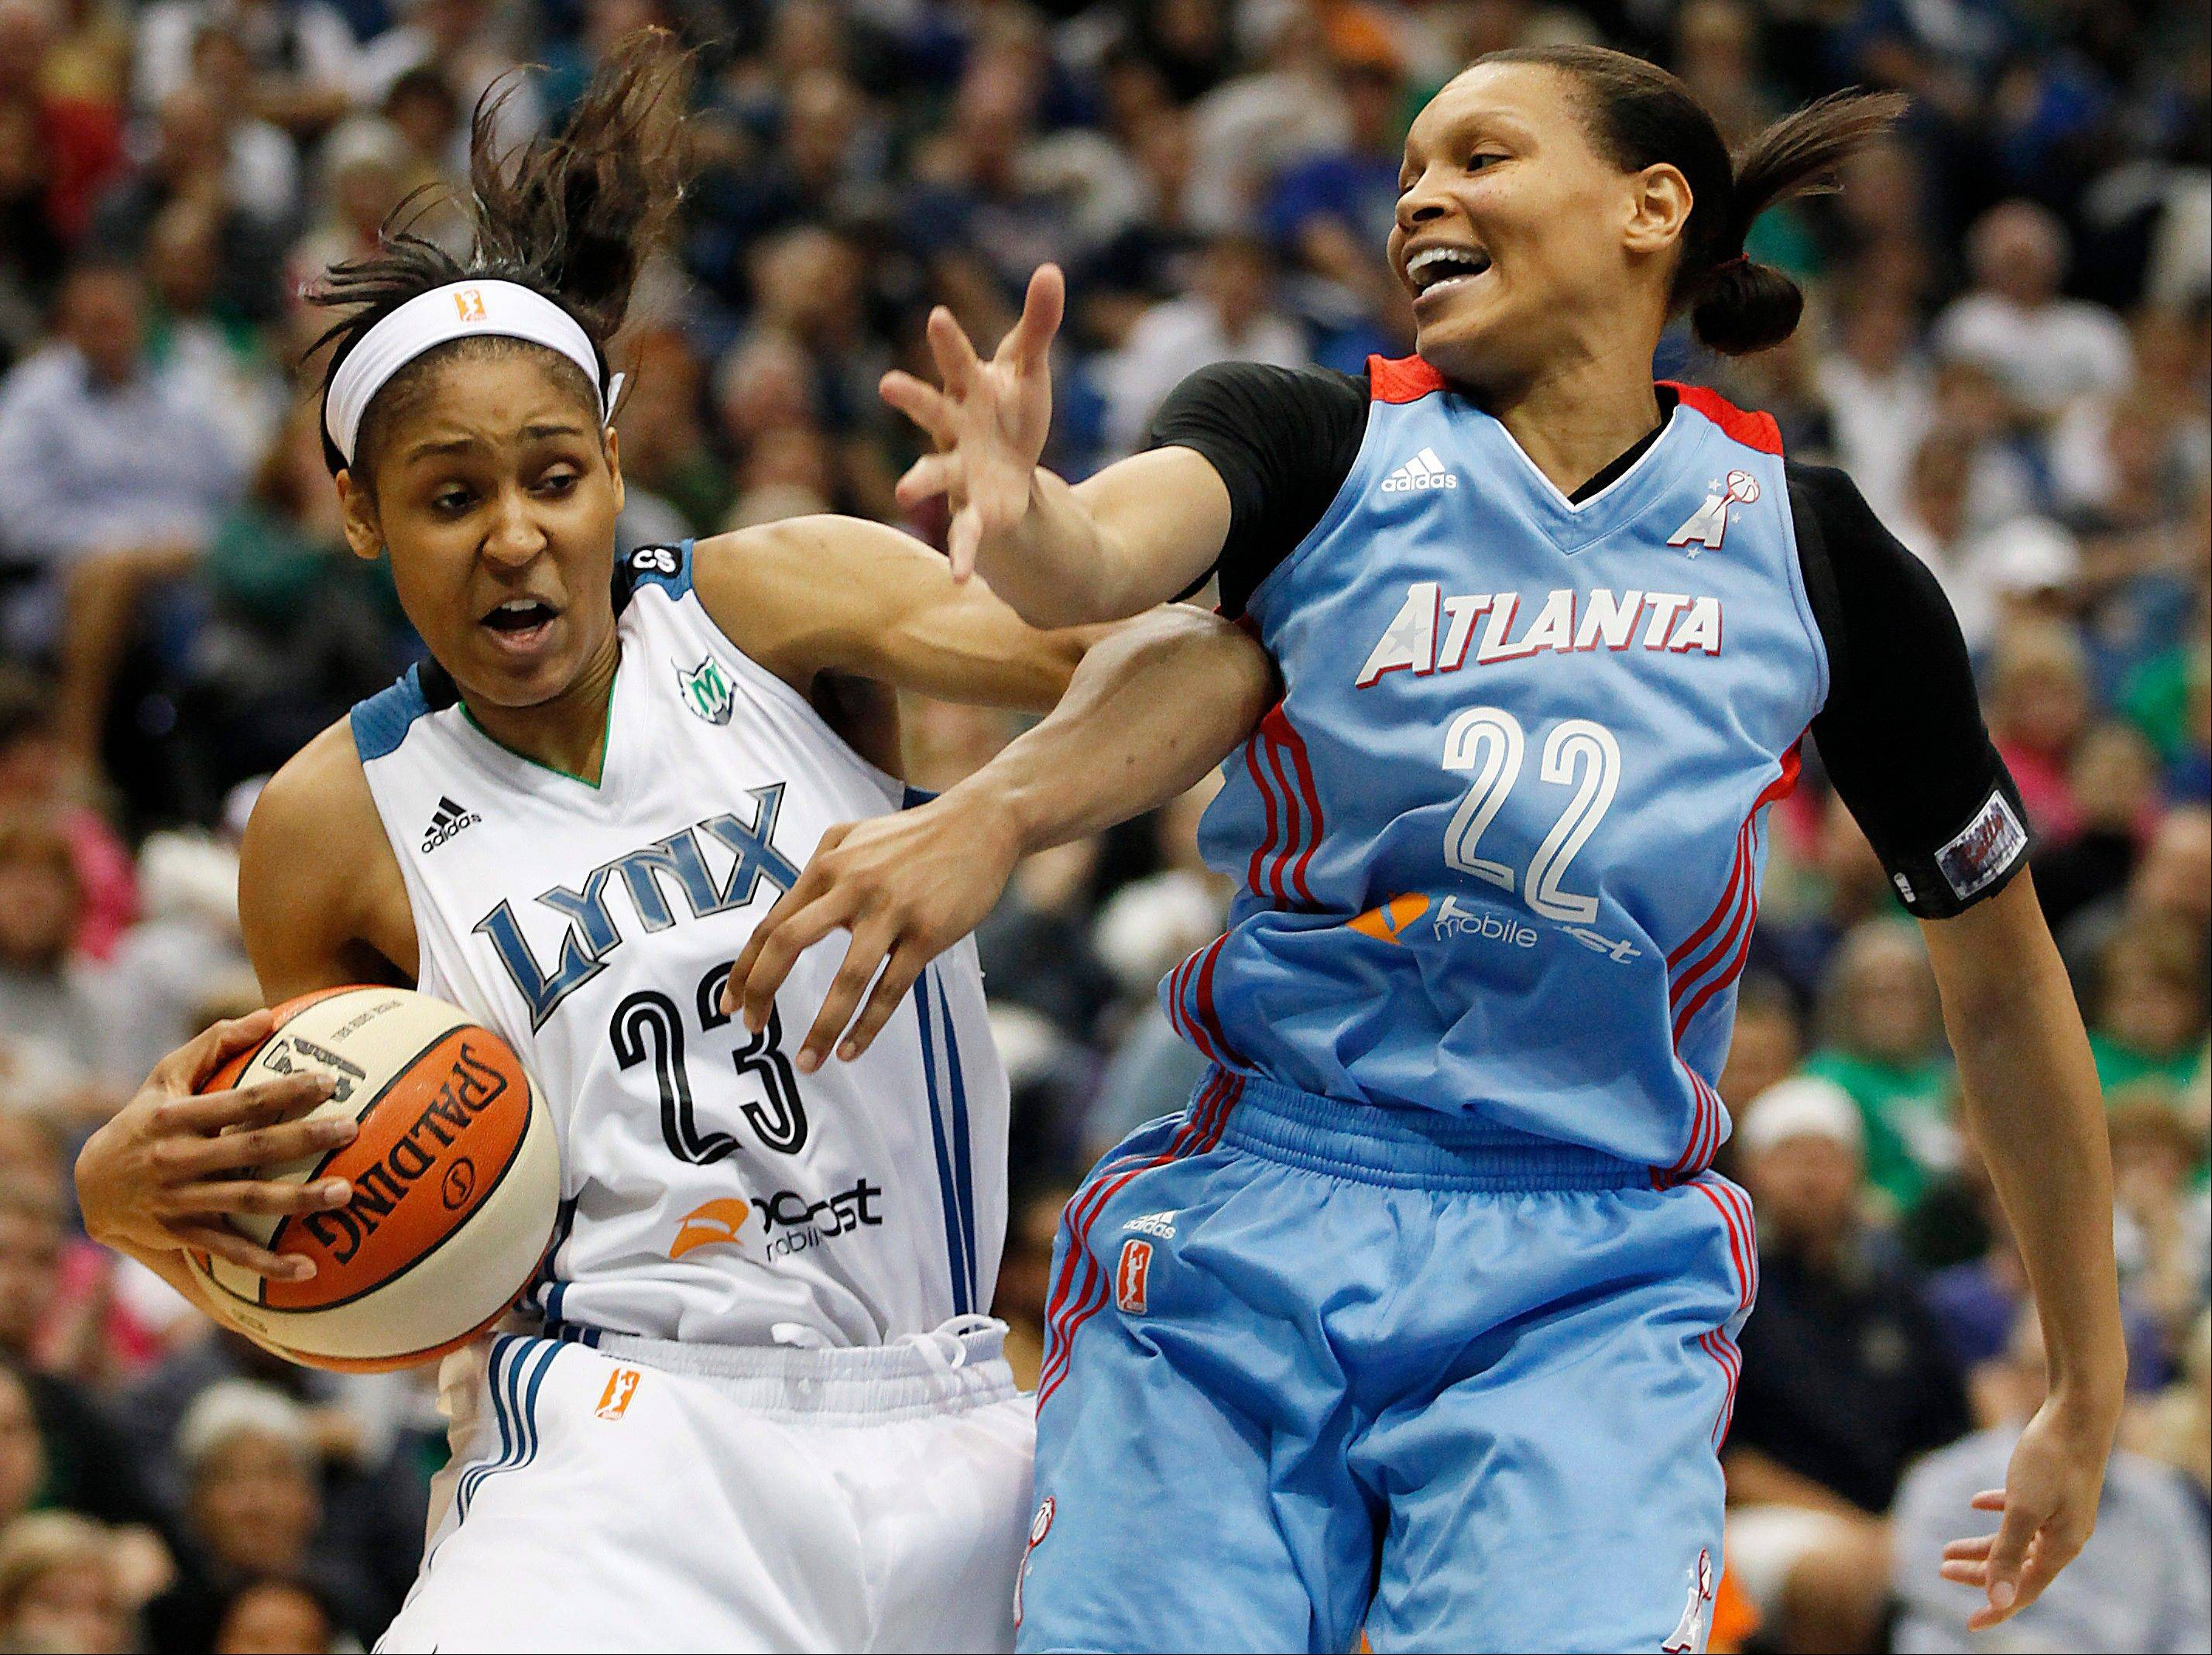 Minnesota Lynx forward Maya Moore (23) has the intensity and skills to will her team to victory in the WNBA playoffs. Moore was named the WNBA Finals MVP after leading her team to its second title in three years.